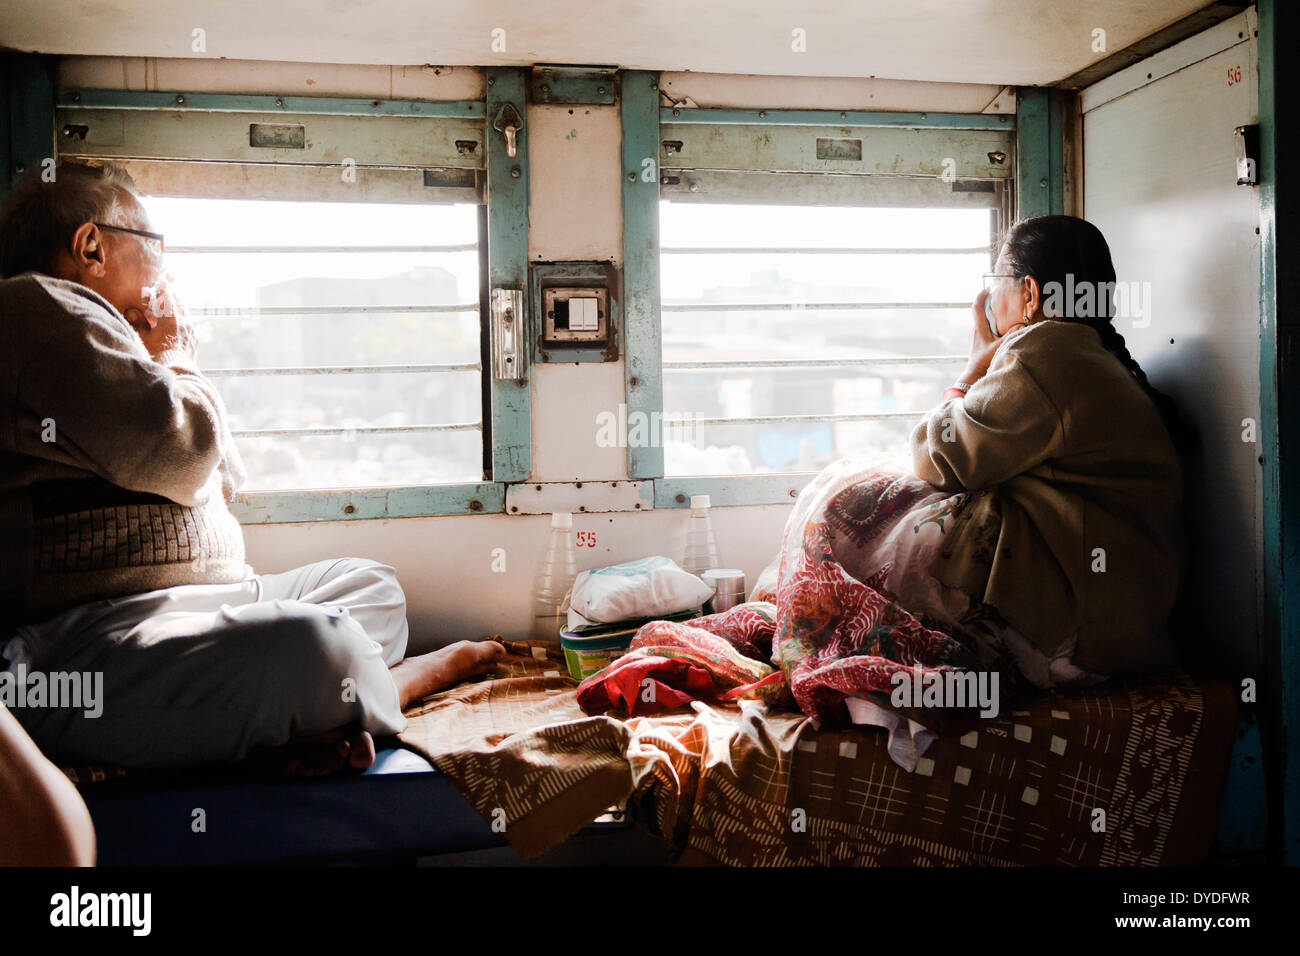 An elderly couple on the train covering their noses due to the smell from a nearby slum. - Stock Image